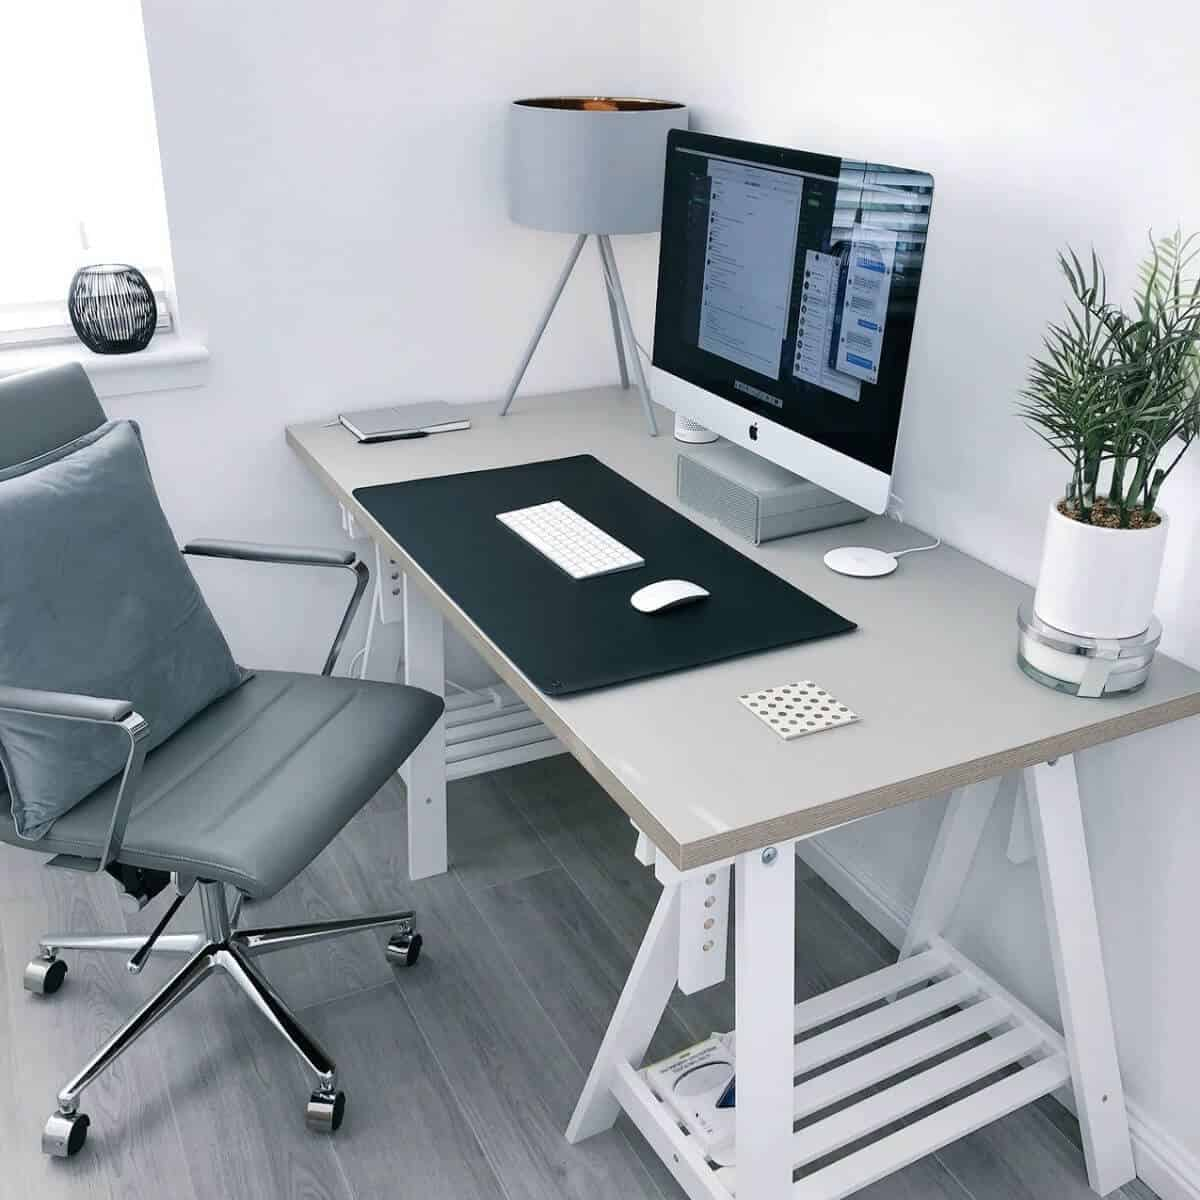 Home office desk and chair in a room.